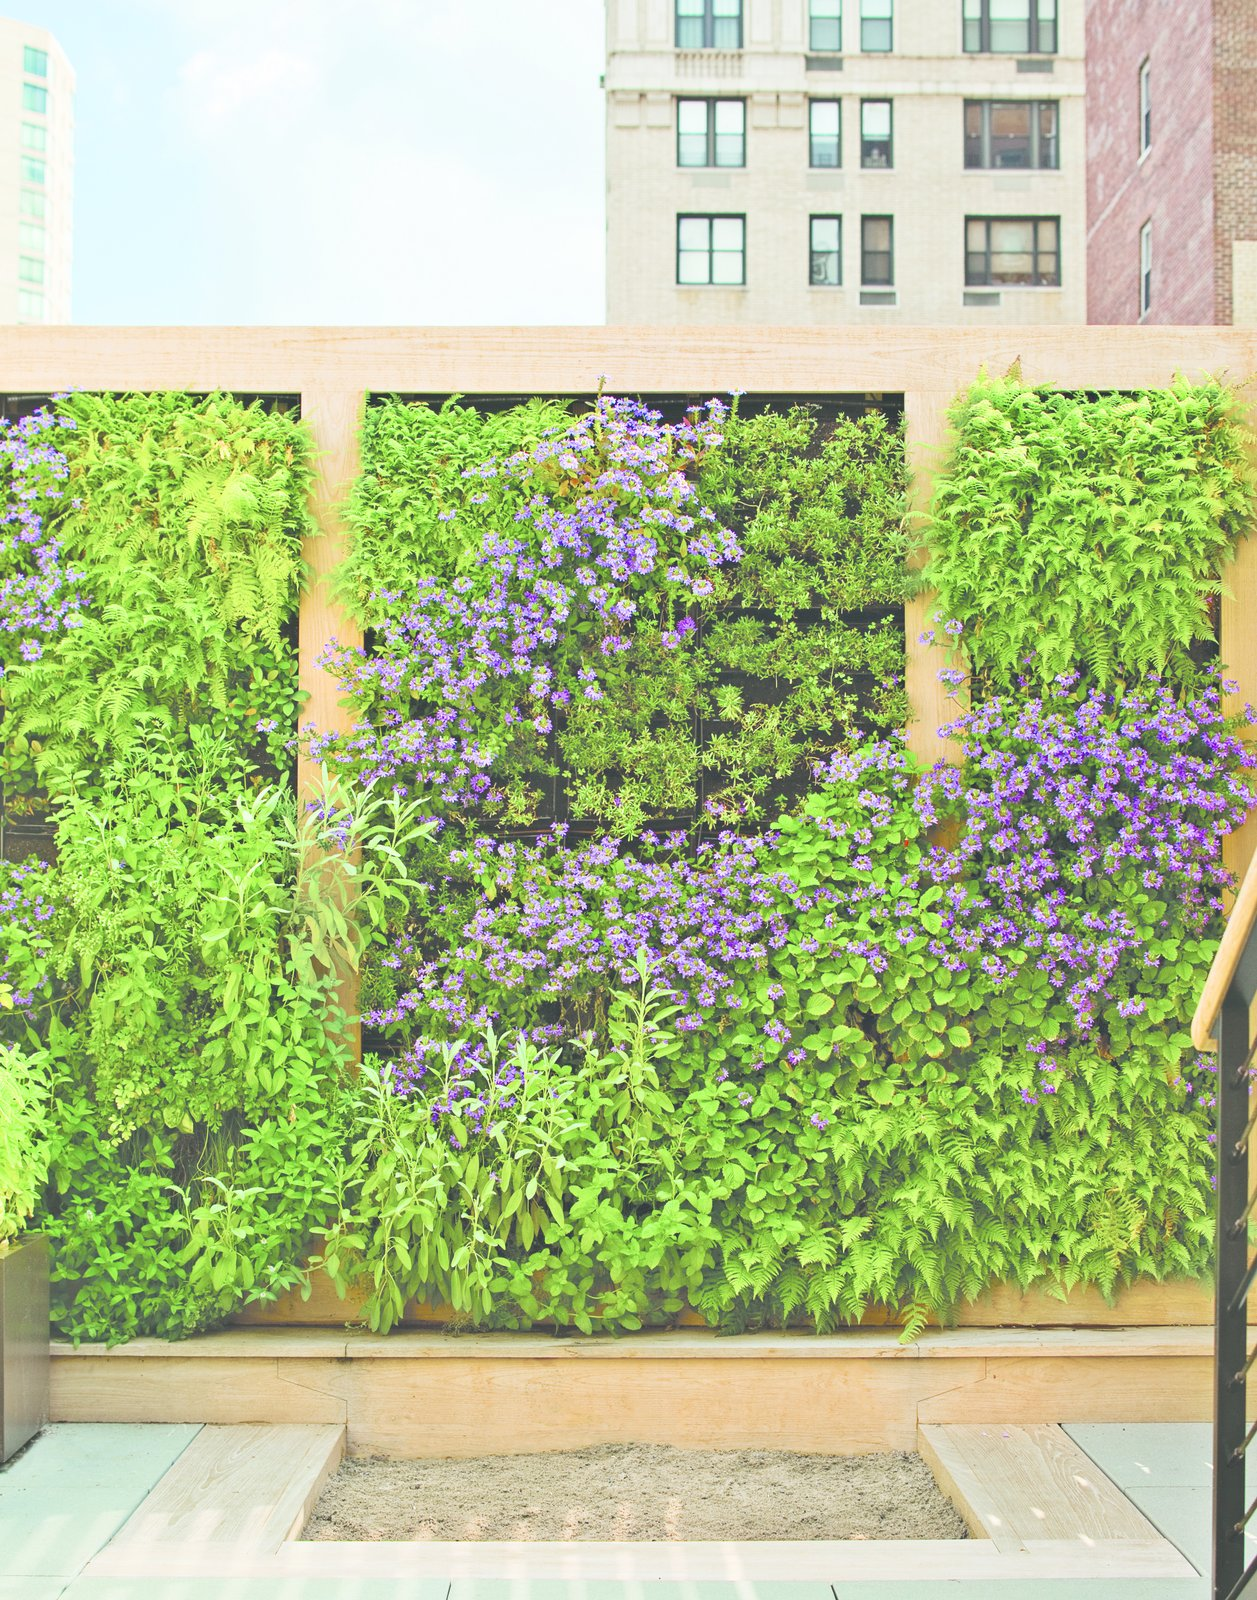 The perennial plants on the green wall were plotted out as a piece of verdant abstract art. Edibles, like strawberry, thyme, and rosemary, are planted within children's reach.